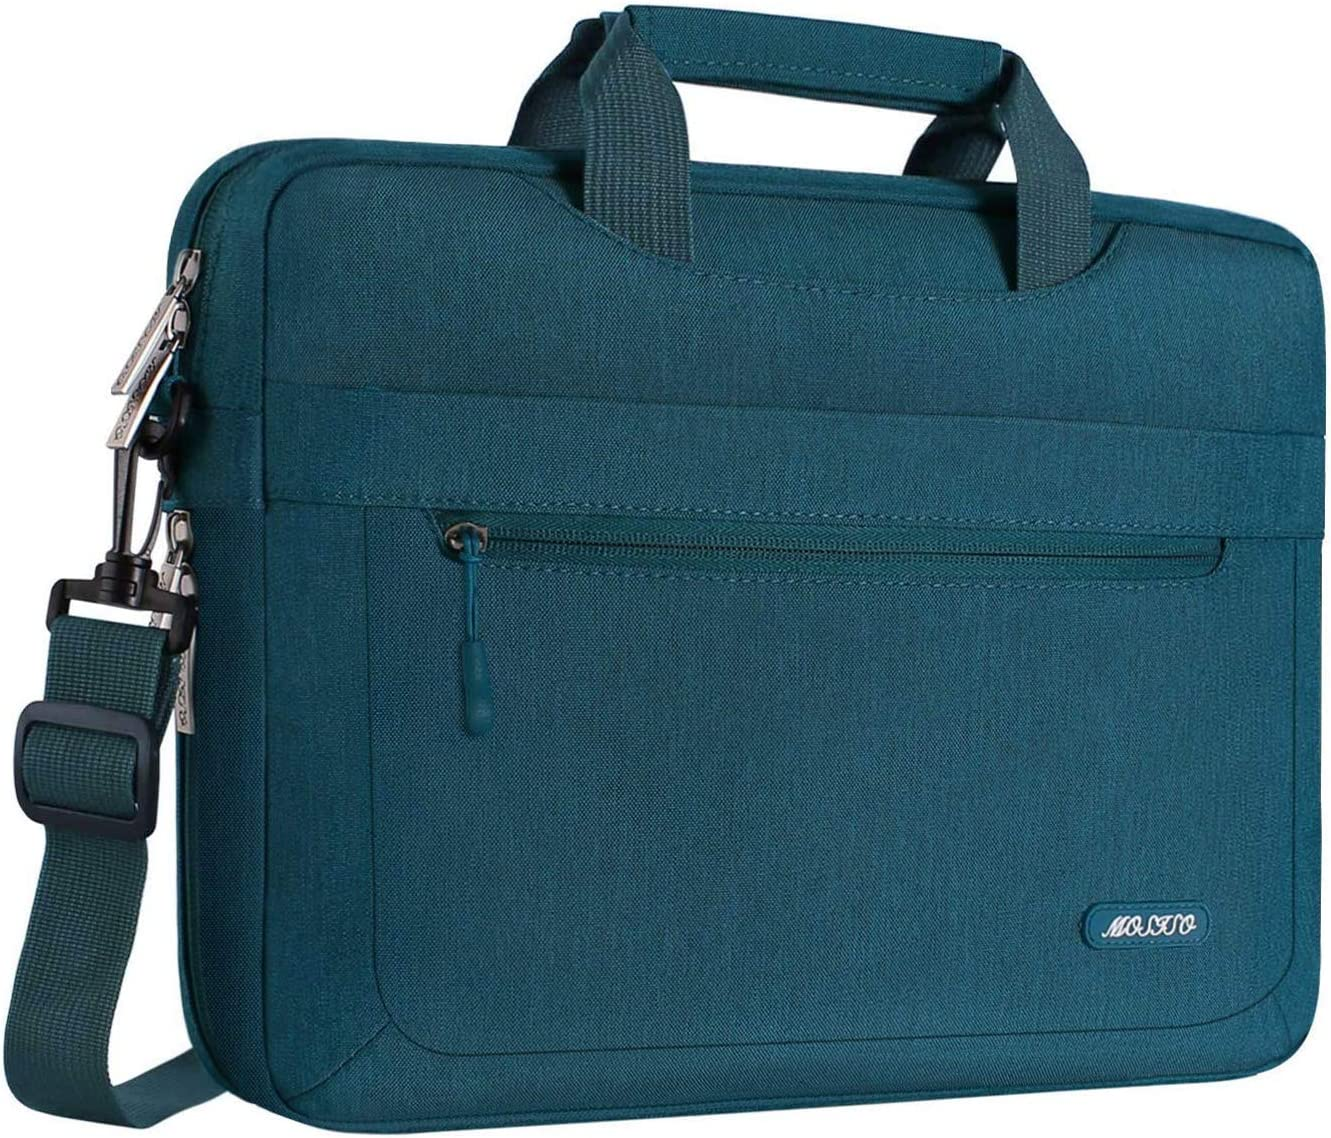 MOSISO Laptop Shoulder Bag Compatible with 13-13.3 inch MacBook Pro, MacBook Air, Notebook Computer, Polyester Messenger Carrying Briefcase Sleeve with Adjustable Depth at Bottom, Deep Teal